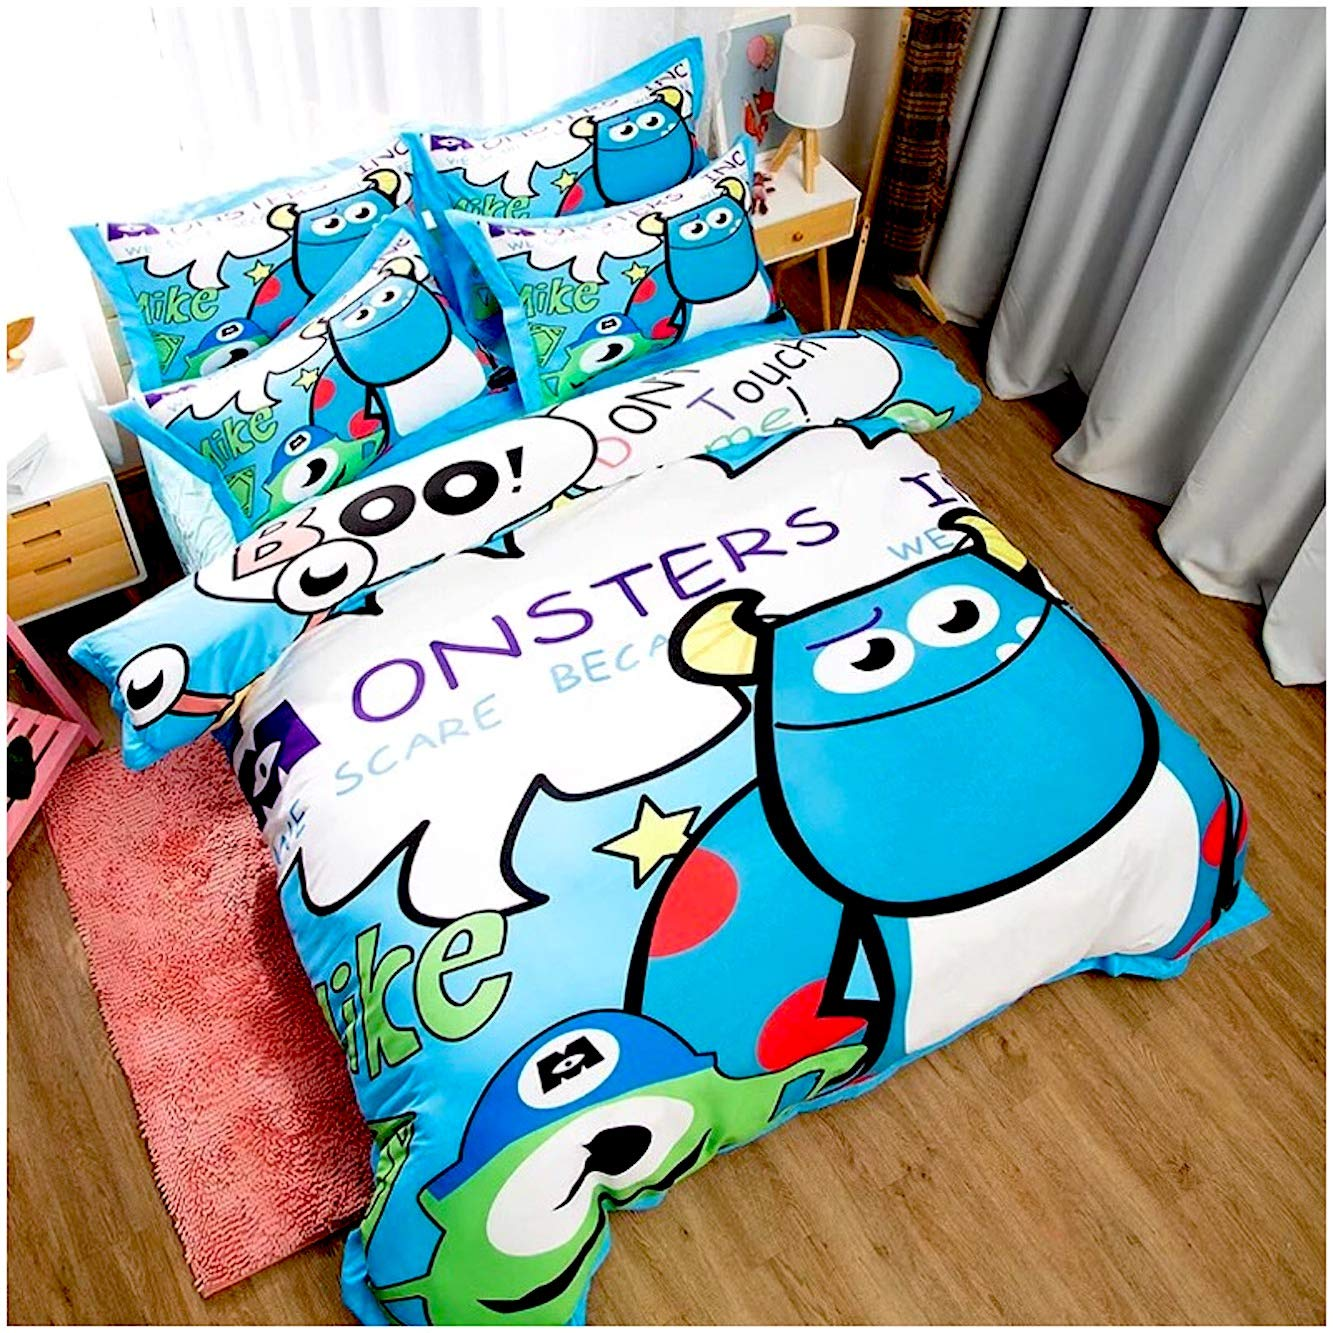 Peachy Baby Featuring Monsters University Inc. Bedding Sheet Set Single Queen King Twin Full Size 【Free Express Shipping】【100% Cotton】 Disney Mike James Cartoon 3 or 4 Pieces (Queen/Double/Full Size)